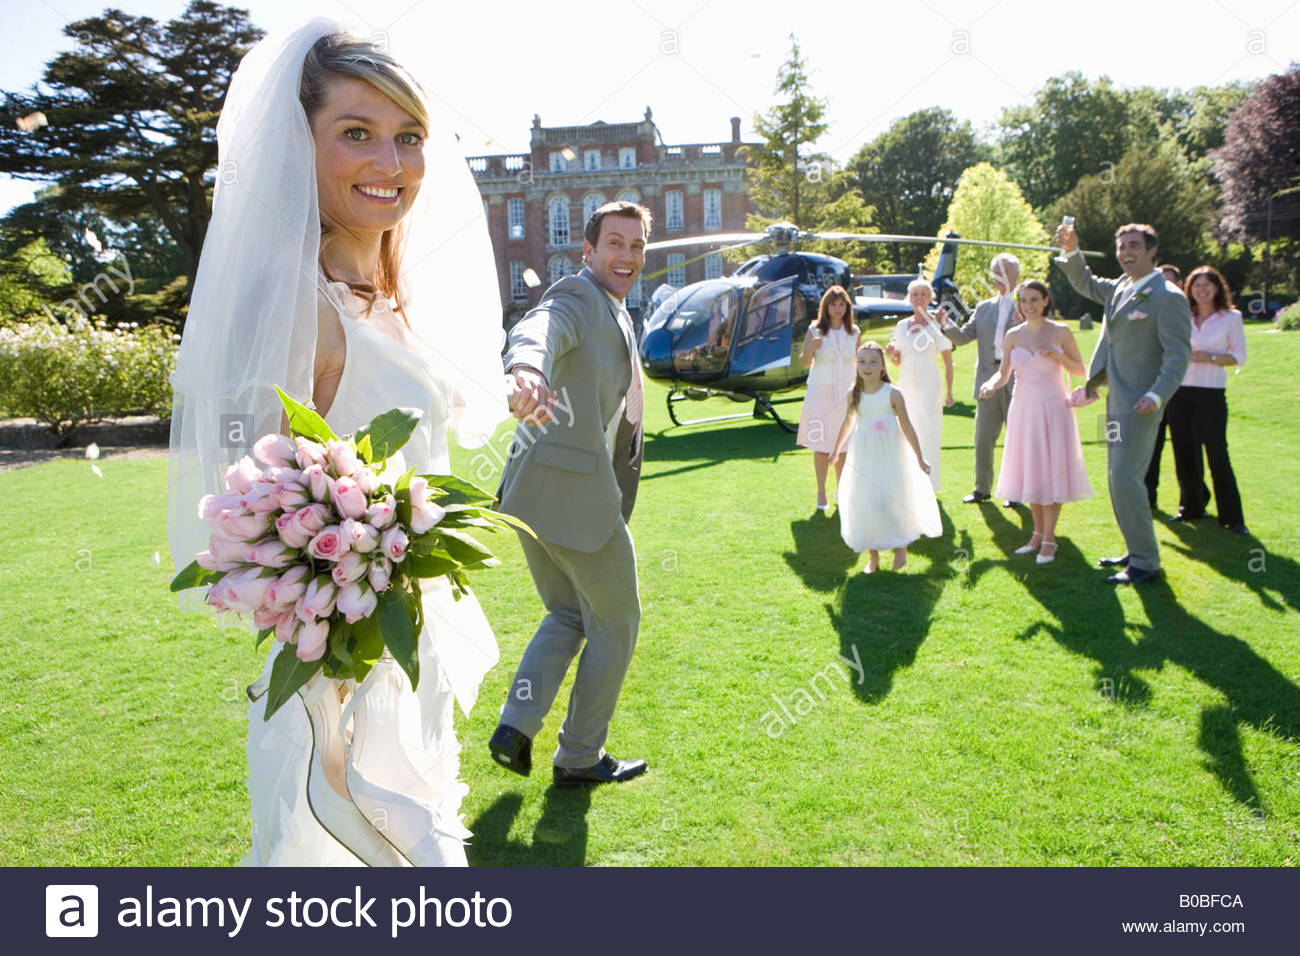 Groom leading bride towards helicopter, smiling, portrait of bride - Stock Image